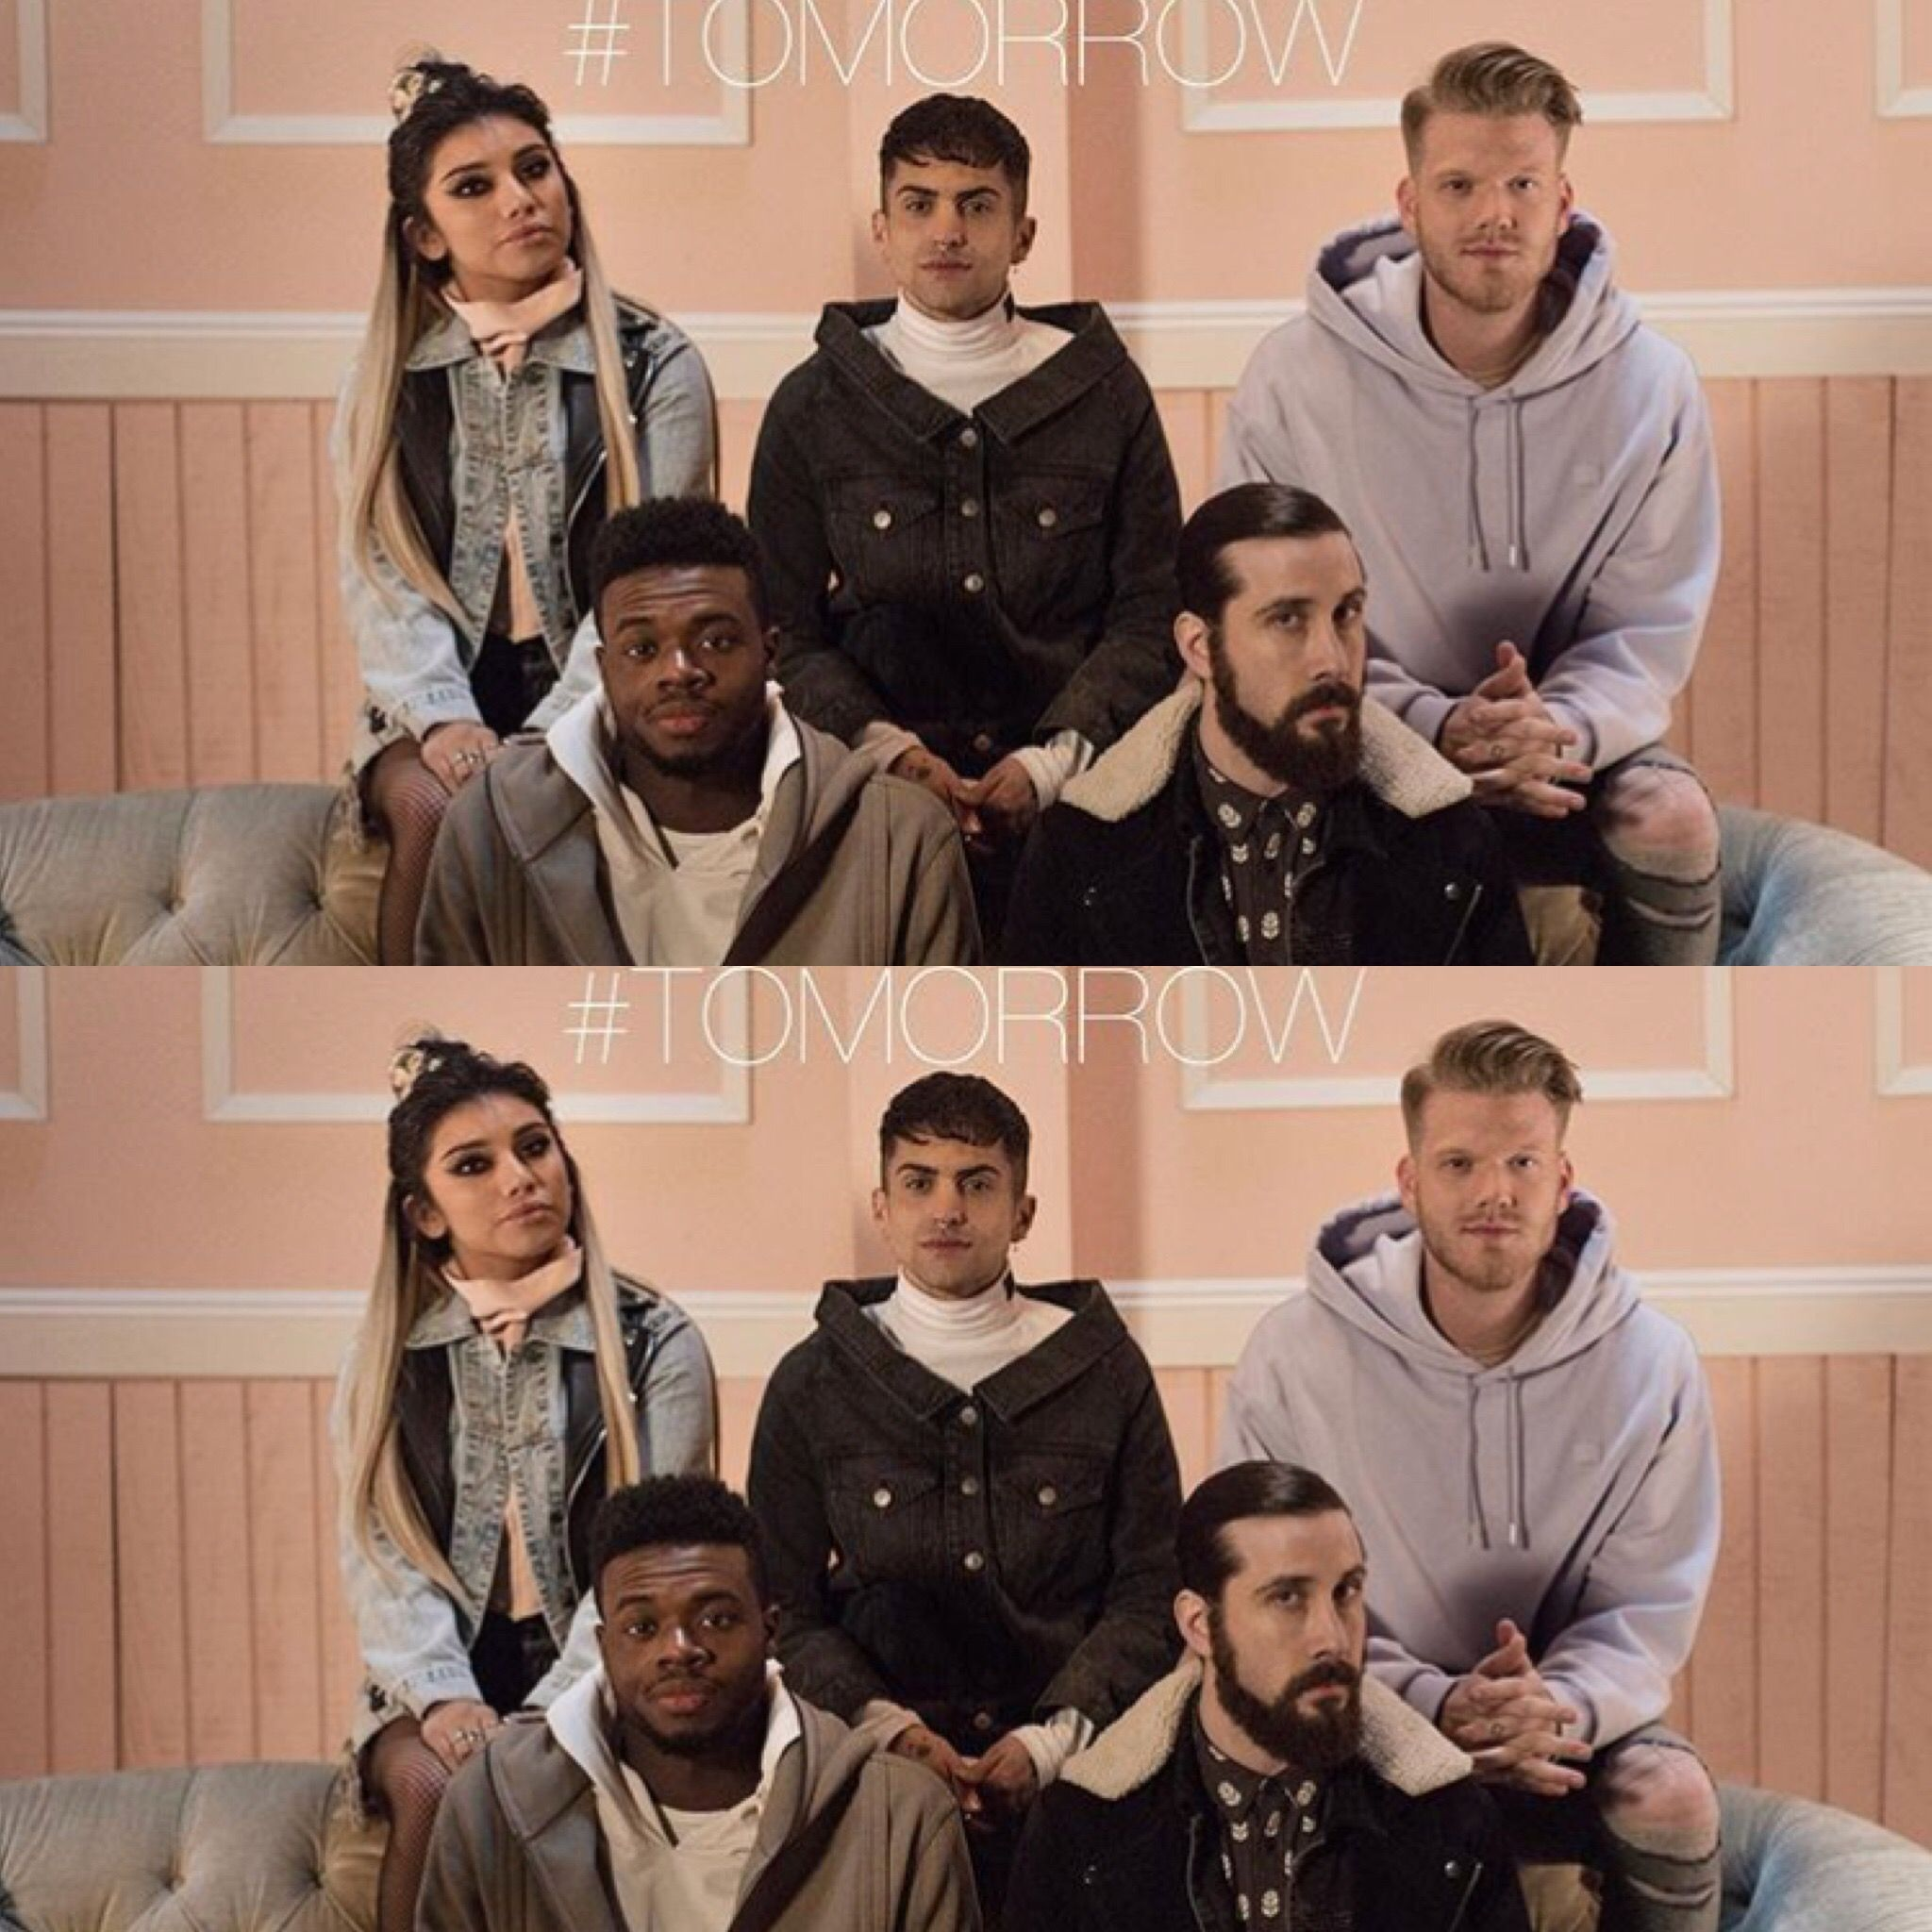 PTX CLASSICS IS OUT TODAY